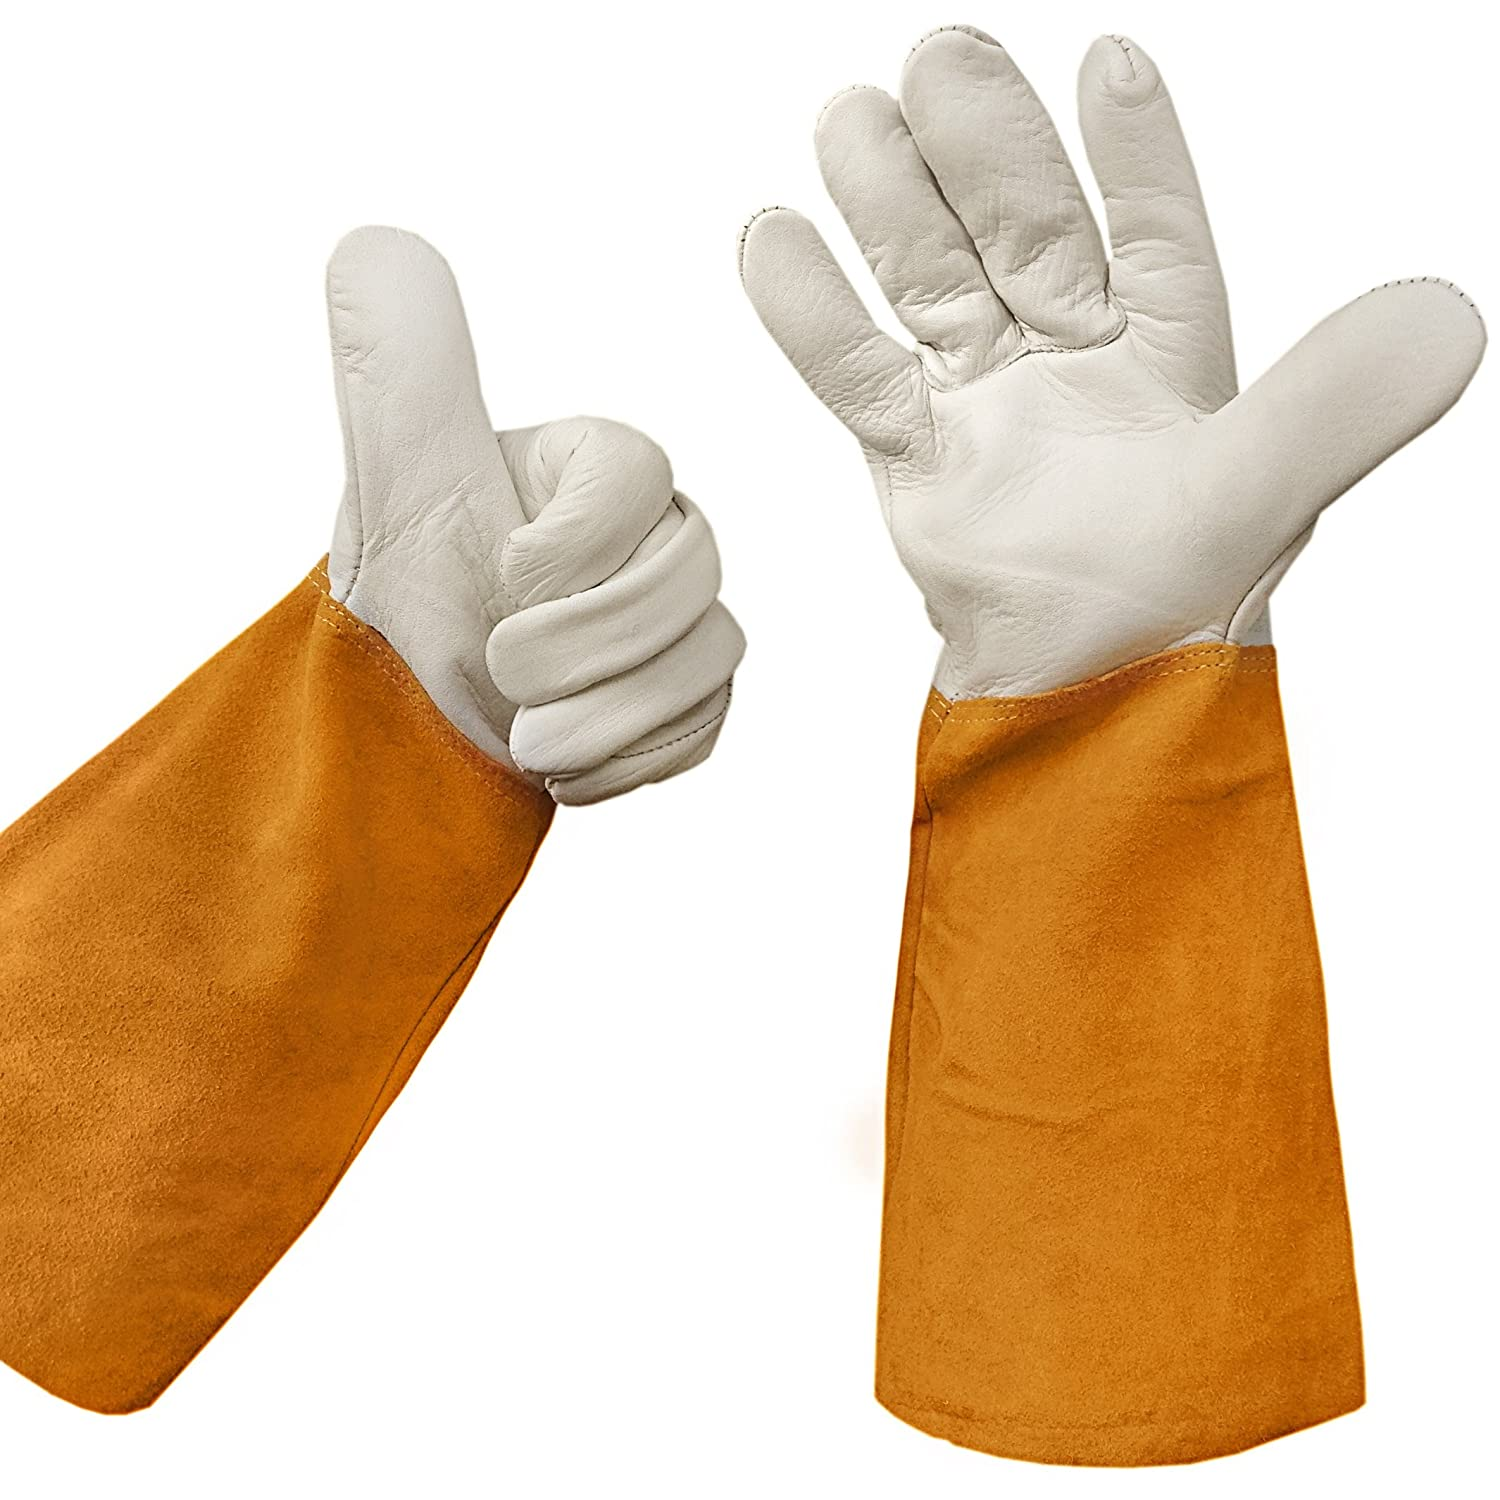 Leather gardening gloves for Gardening gloves amazon